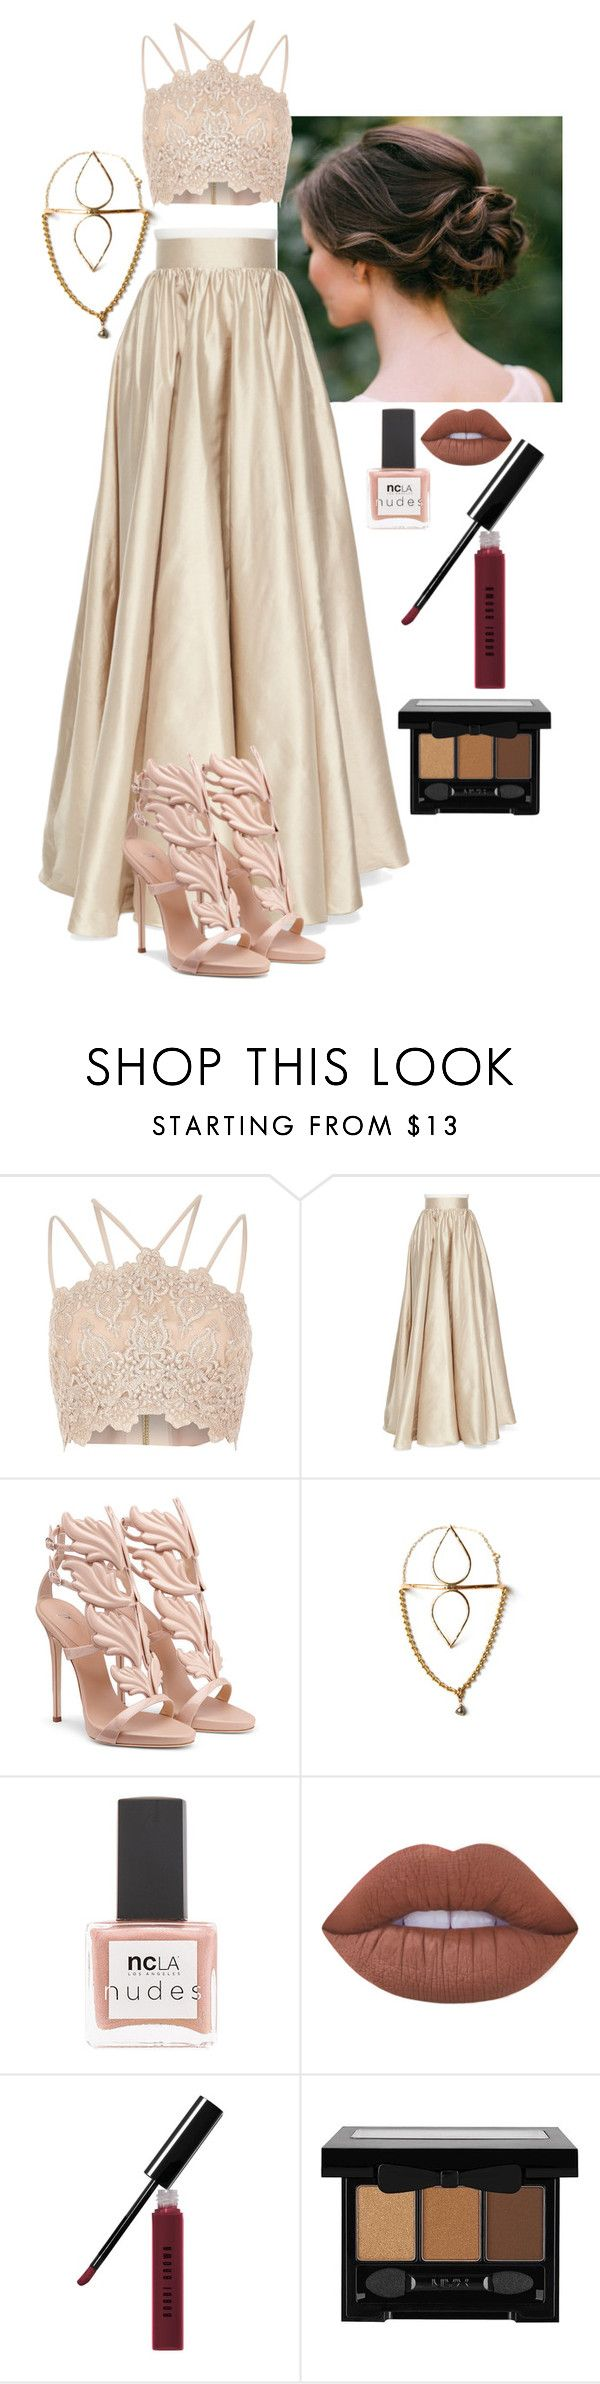 """nude"" by zulfaladygates on Polyvore featuring River Island, Jenny Packham, Forever 21, ncLA, Lime Crime, Bobbi Brown Cosmetics and NYX"